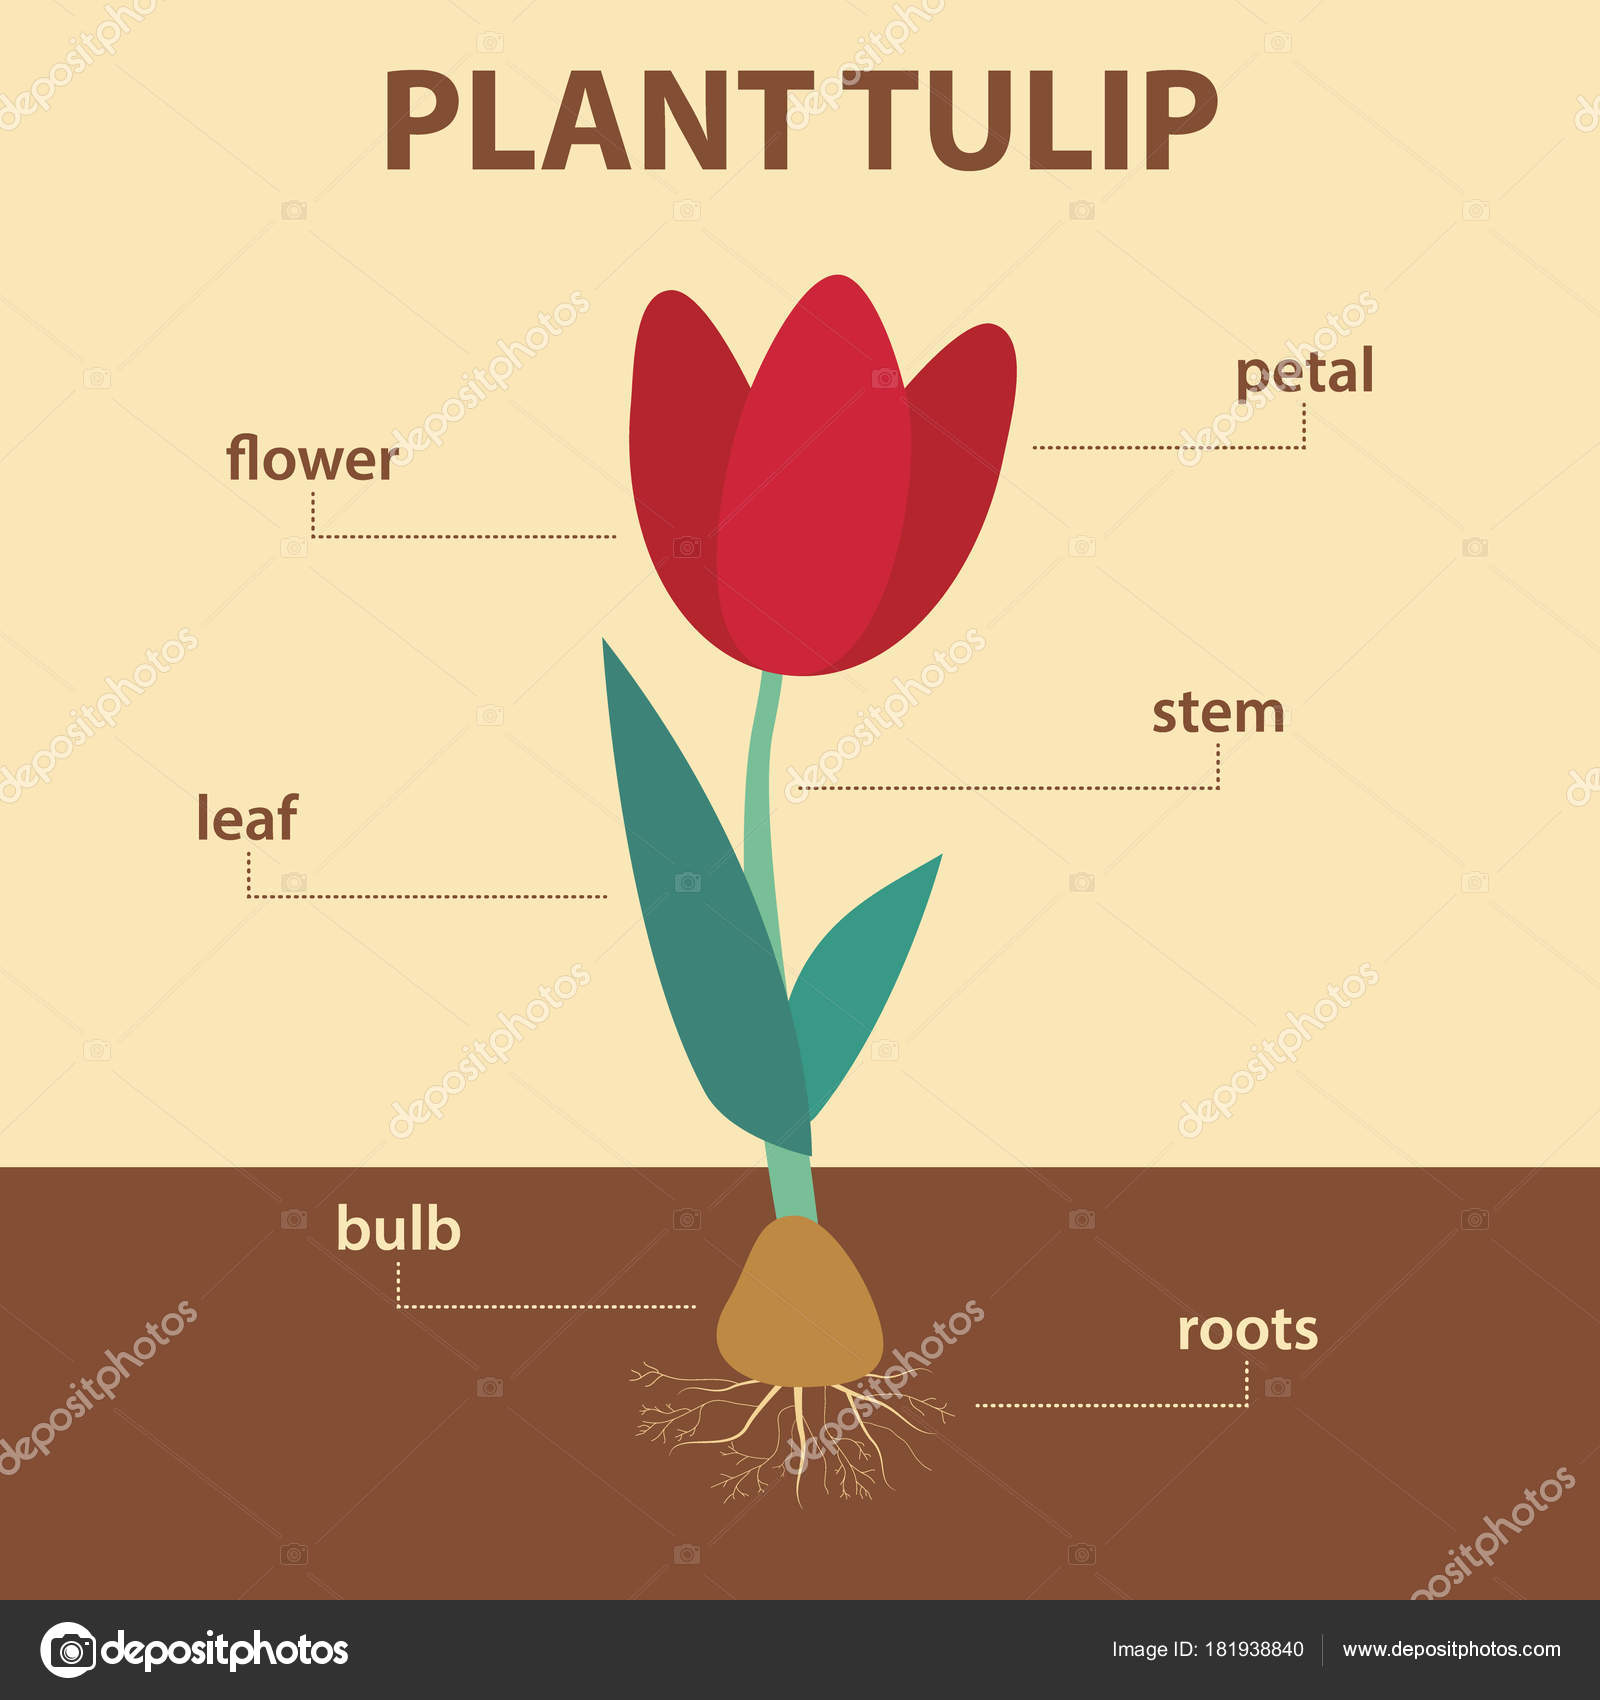 vector diagram showing parts of tulip whole plant. Black Bedroom Furniture Sets. Home Design Ideas